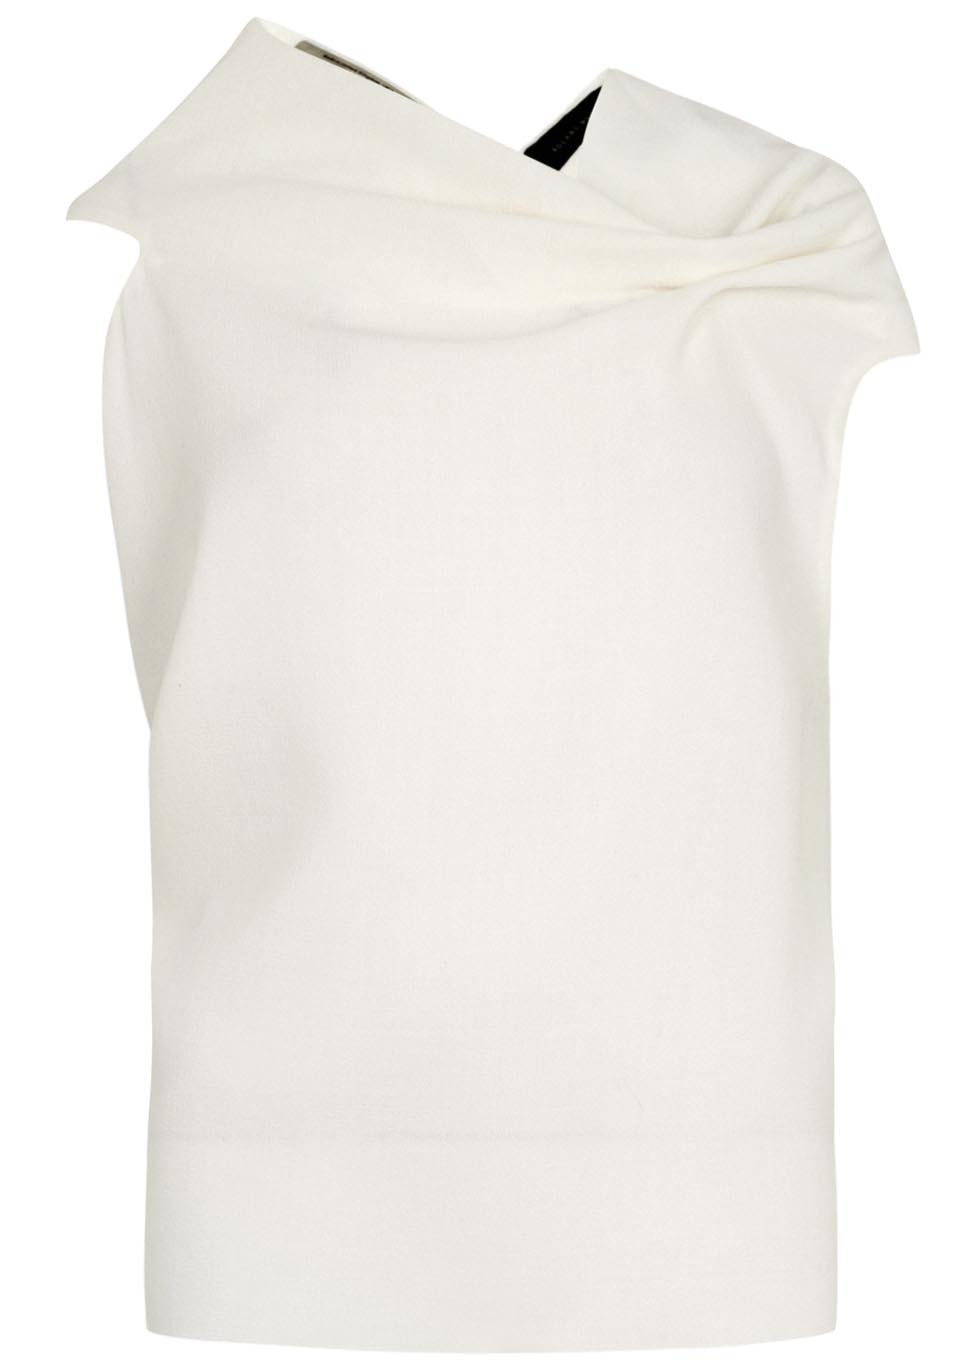 Eugene Ivory Wool Crepe Top - neckline: v-neck; pattern: plain; sleeve style: sleeveless; predominant colour: ivory/cream; occasions: casual, evening, creative work; length: standard; style: top; fibres: wool - 100%; fit: straight cut; sleeve length: short sleeve; texture group: crepes; pattern type: fabric; season: s/s 2015